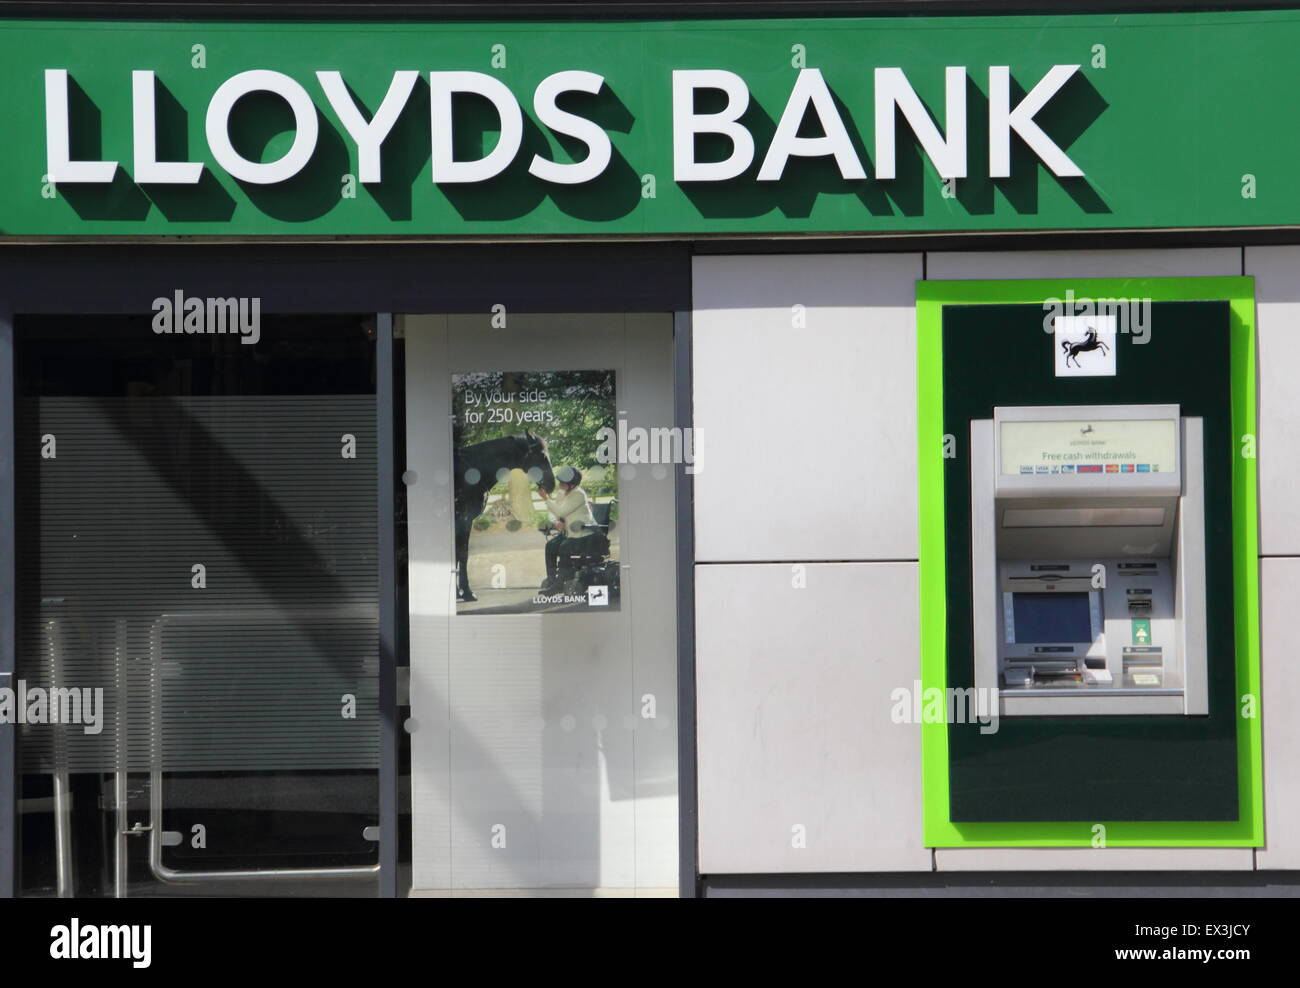 An ATM cashpoint machine at a Lloyds Bank branch in Derbyshire England UK - Stock Image